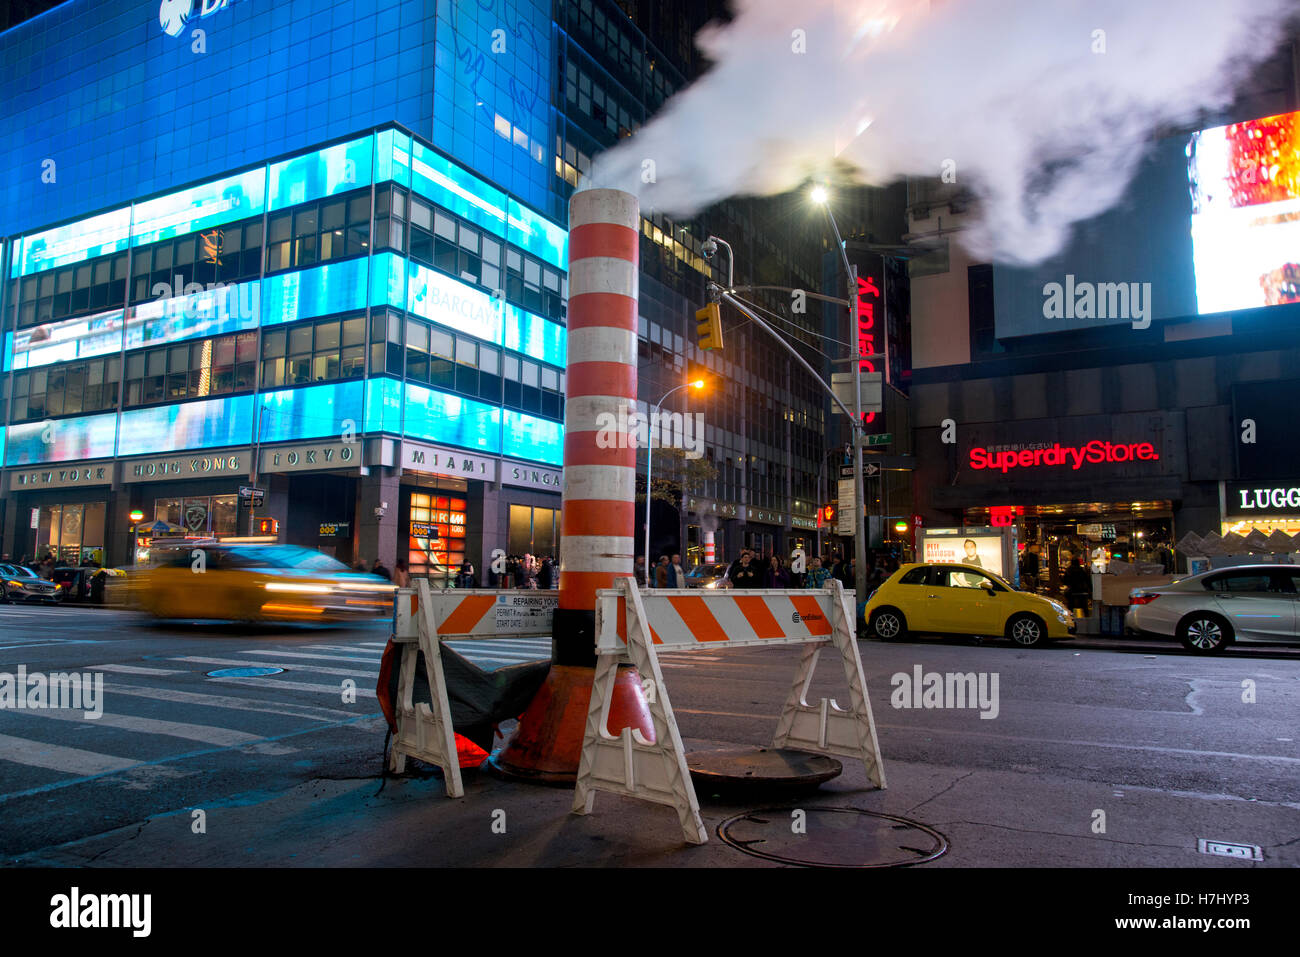 Con-Edison steam system stack venting vapour into the night on 7th Avenue, Manhattan, New York - Stock Image